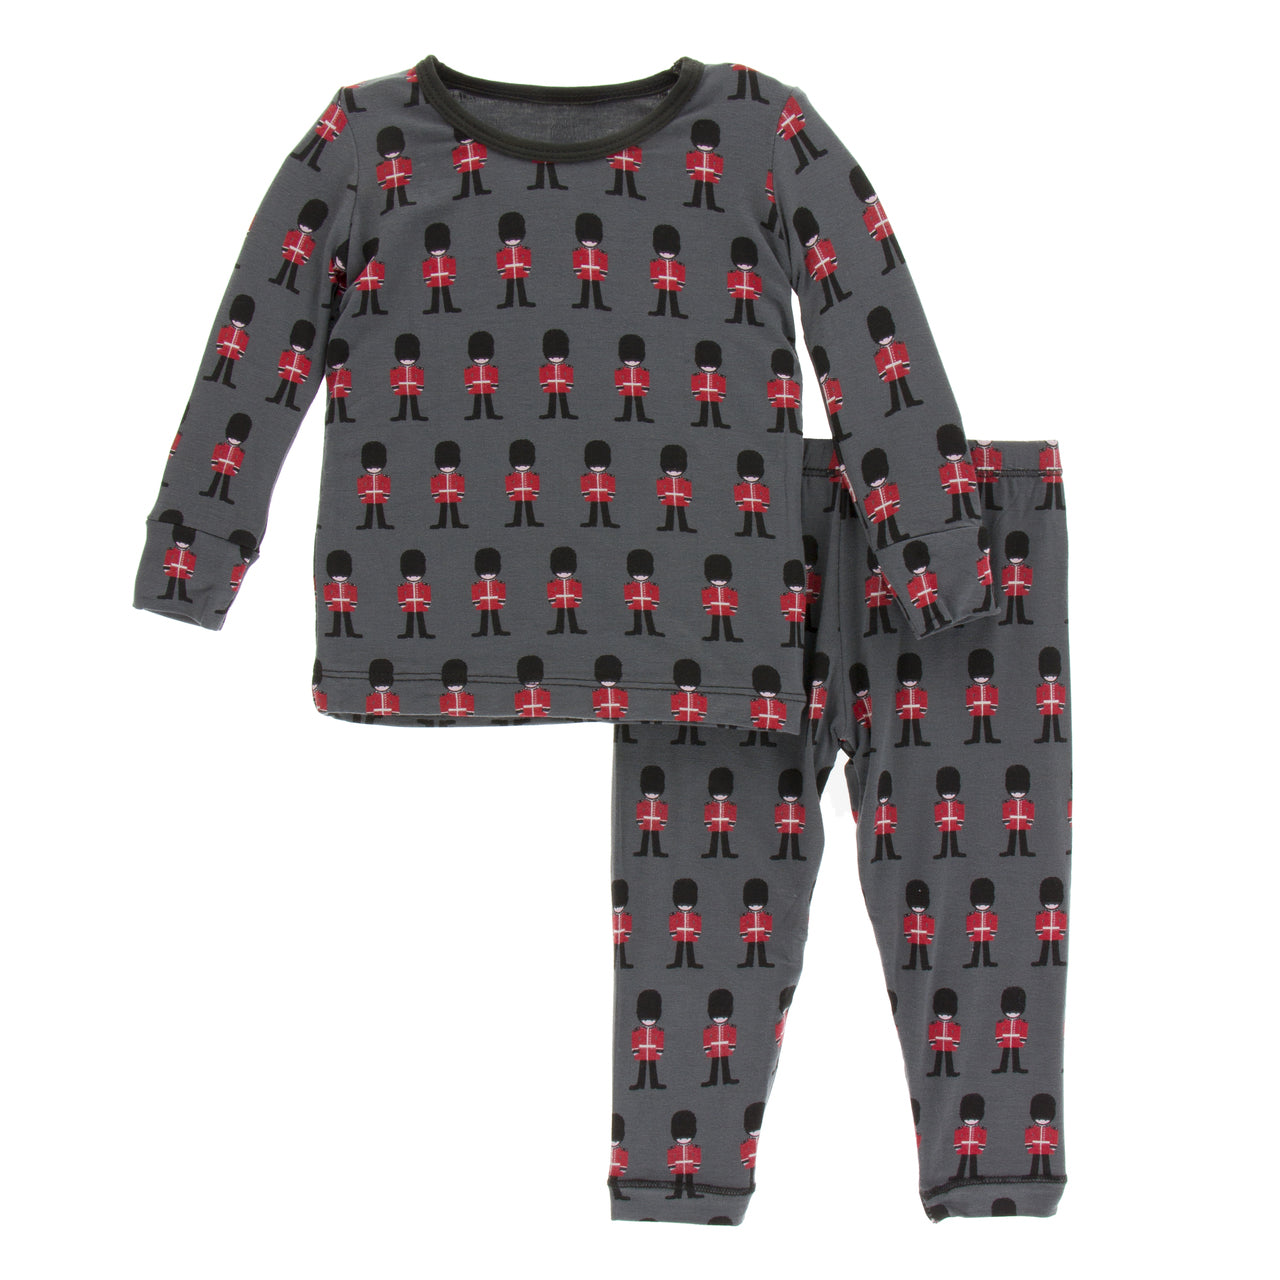 9487110a2 KicKee Pants London Long Sleeve Pajama Set in Queens Guard – The ...